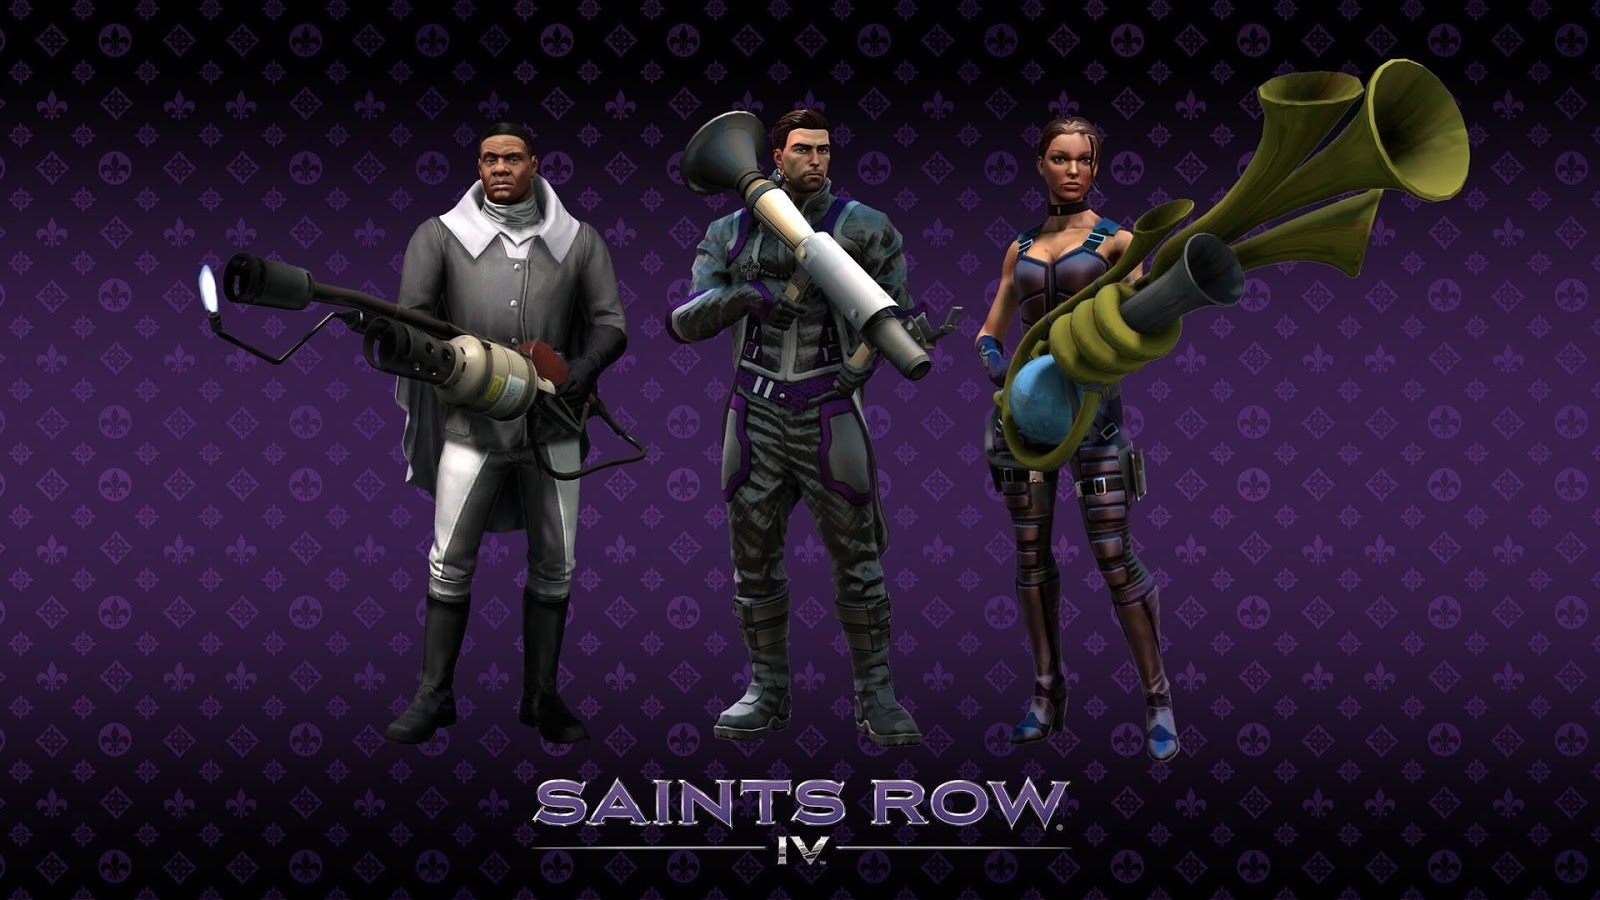 Saints Row flirt 4